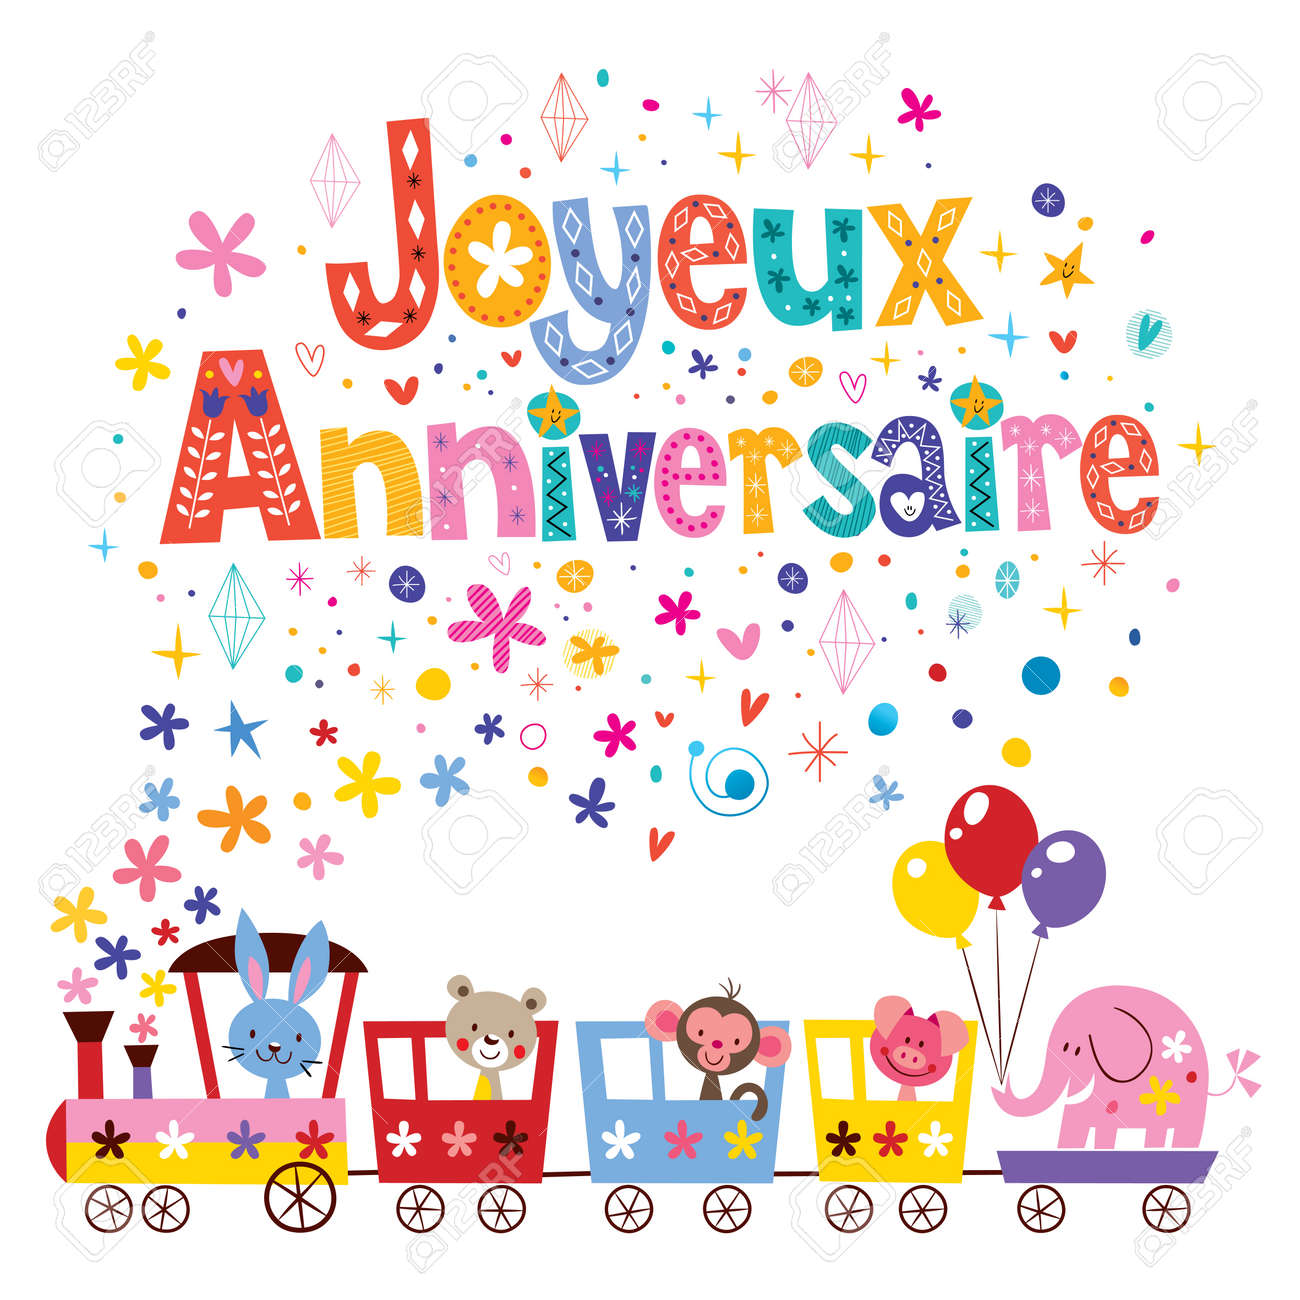 Joyeux anniversaire happy birthday in french greeting card royalty joyeux anniversaire happy birthday in french greeting card stock vector 61780291 m4hsunfo